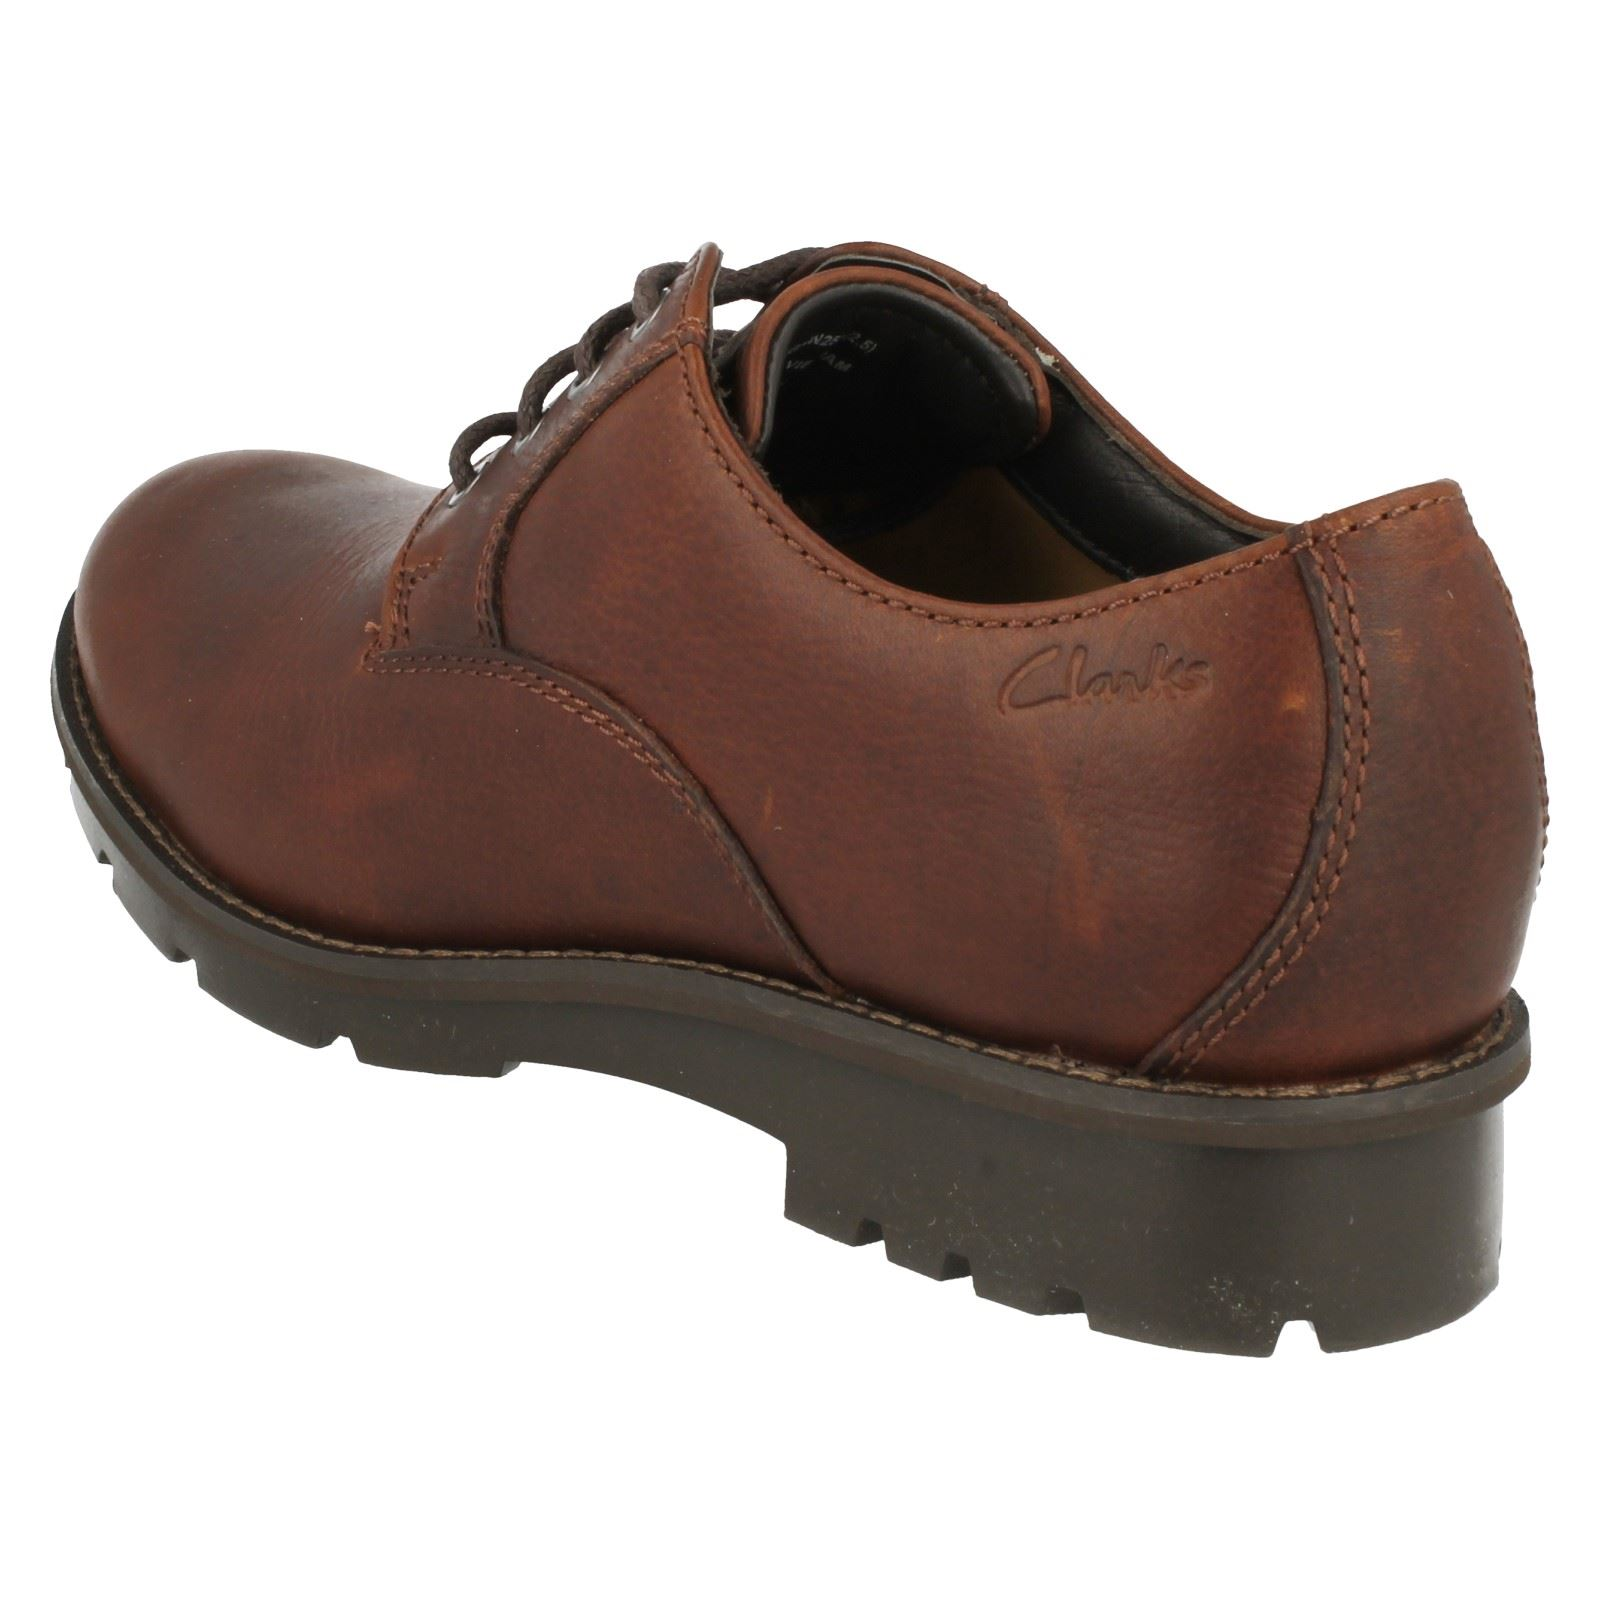 Clarks Mens Casual Scopic Way Leather Shoes